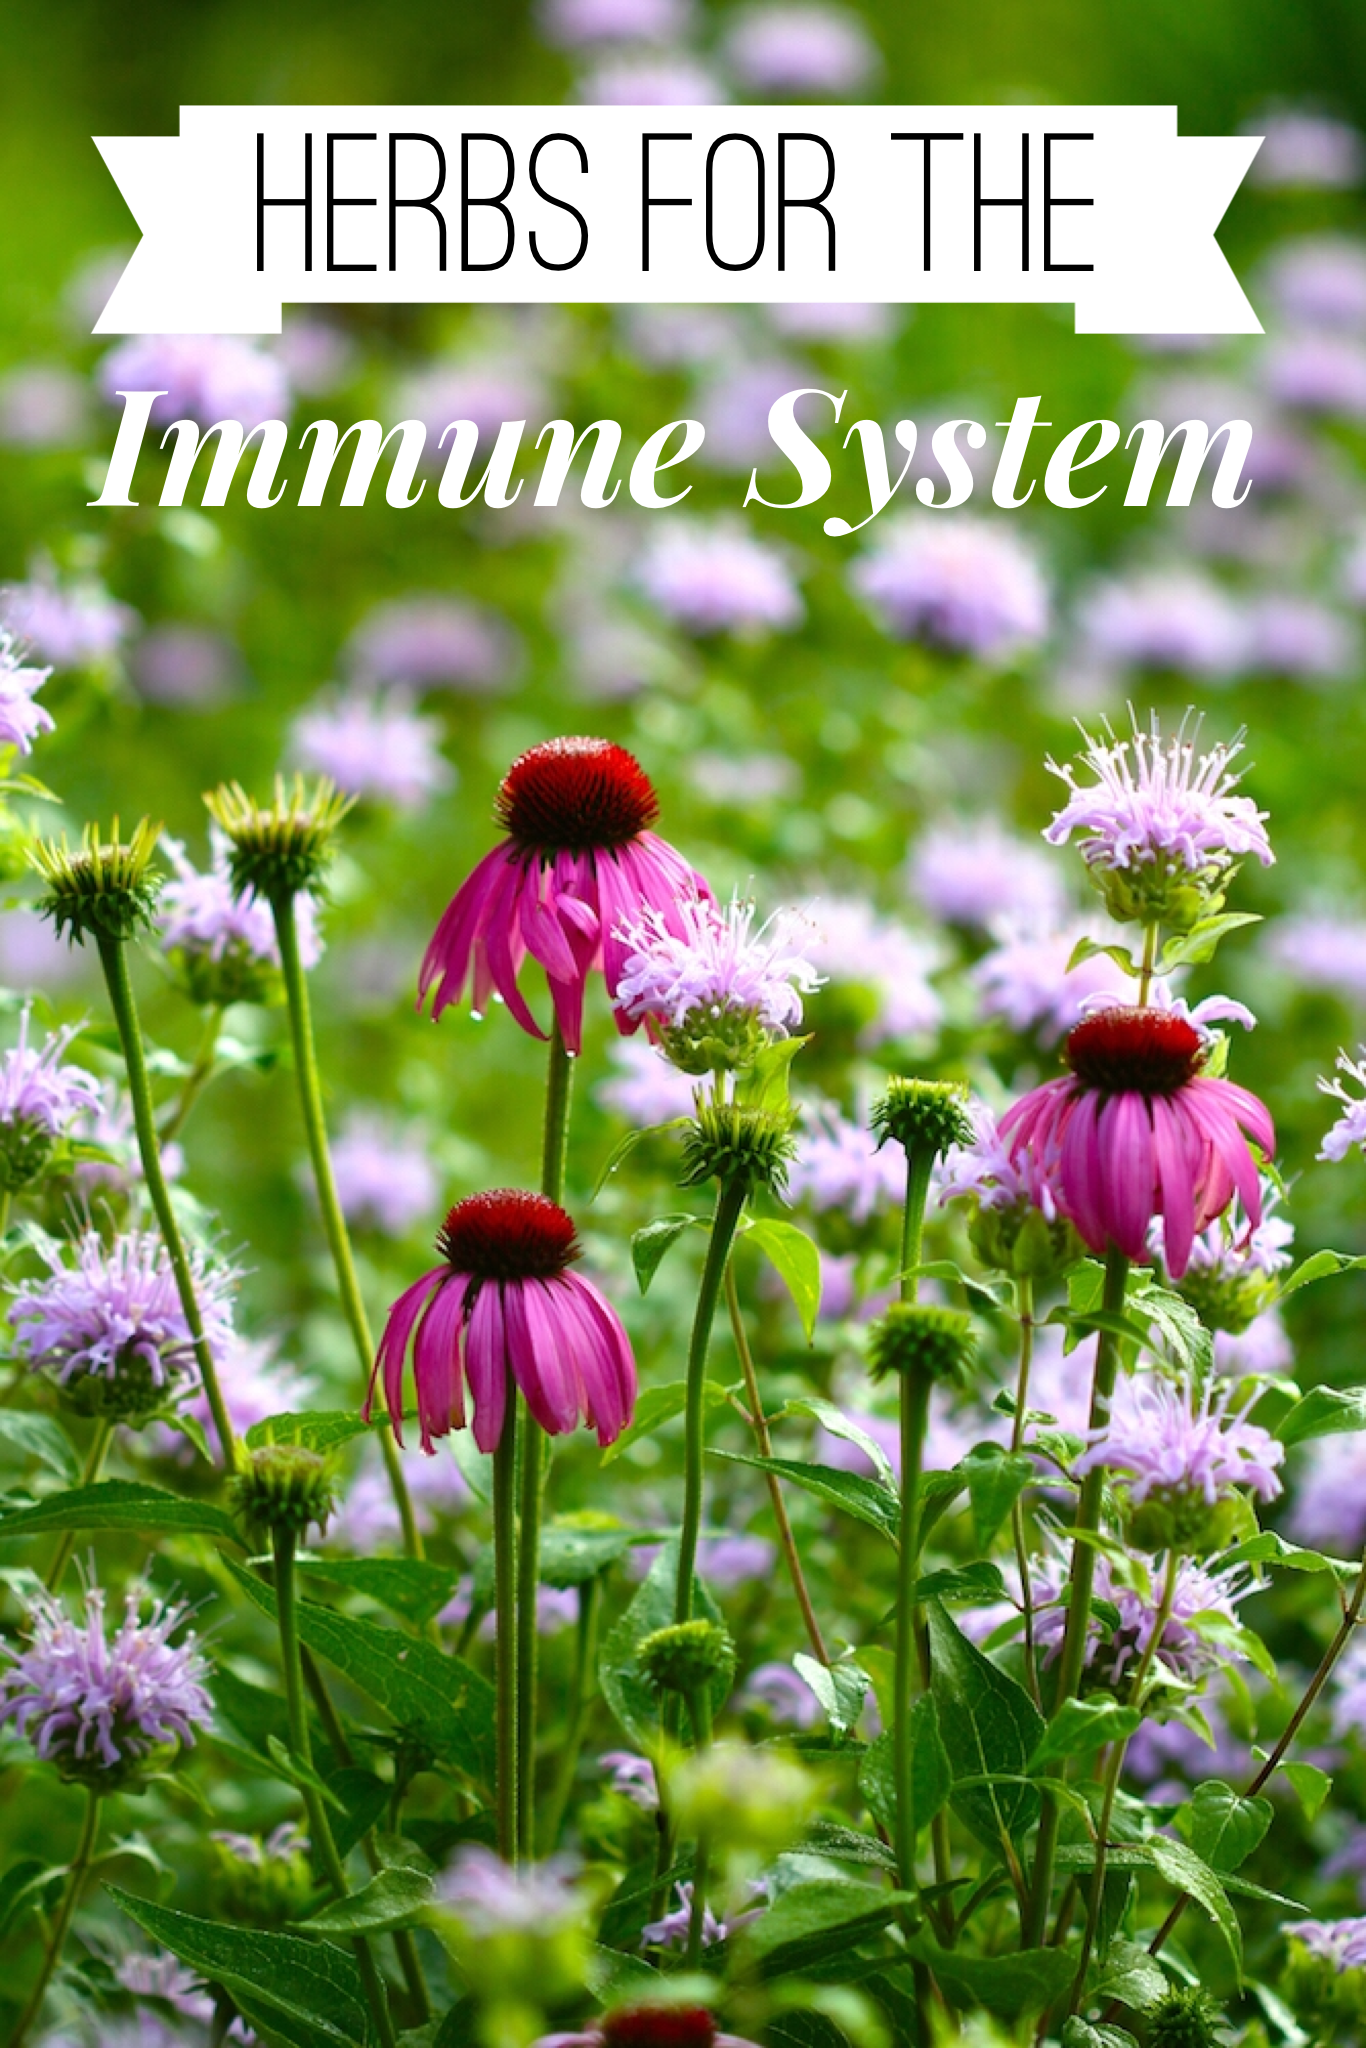 herbs-for-the-immune-system